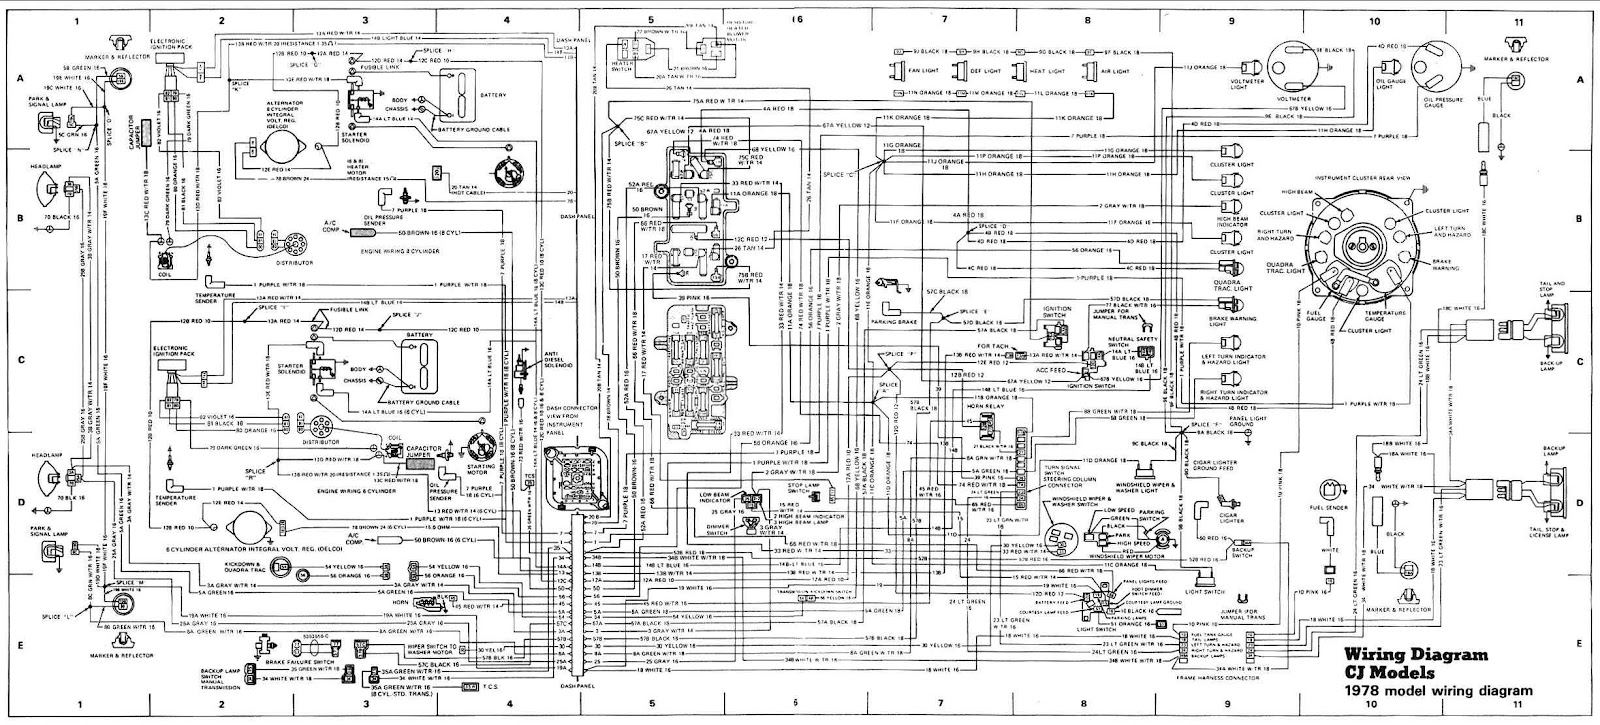 medium resolution of 1978 jeep cj5 wiring diagram free download wiring diagrams on john deere 210le service manual led